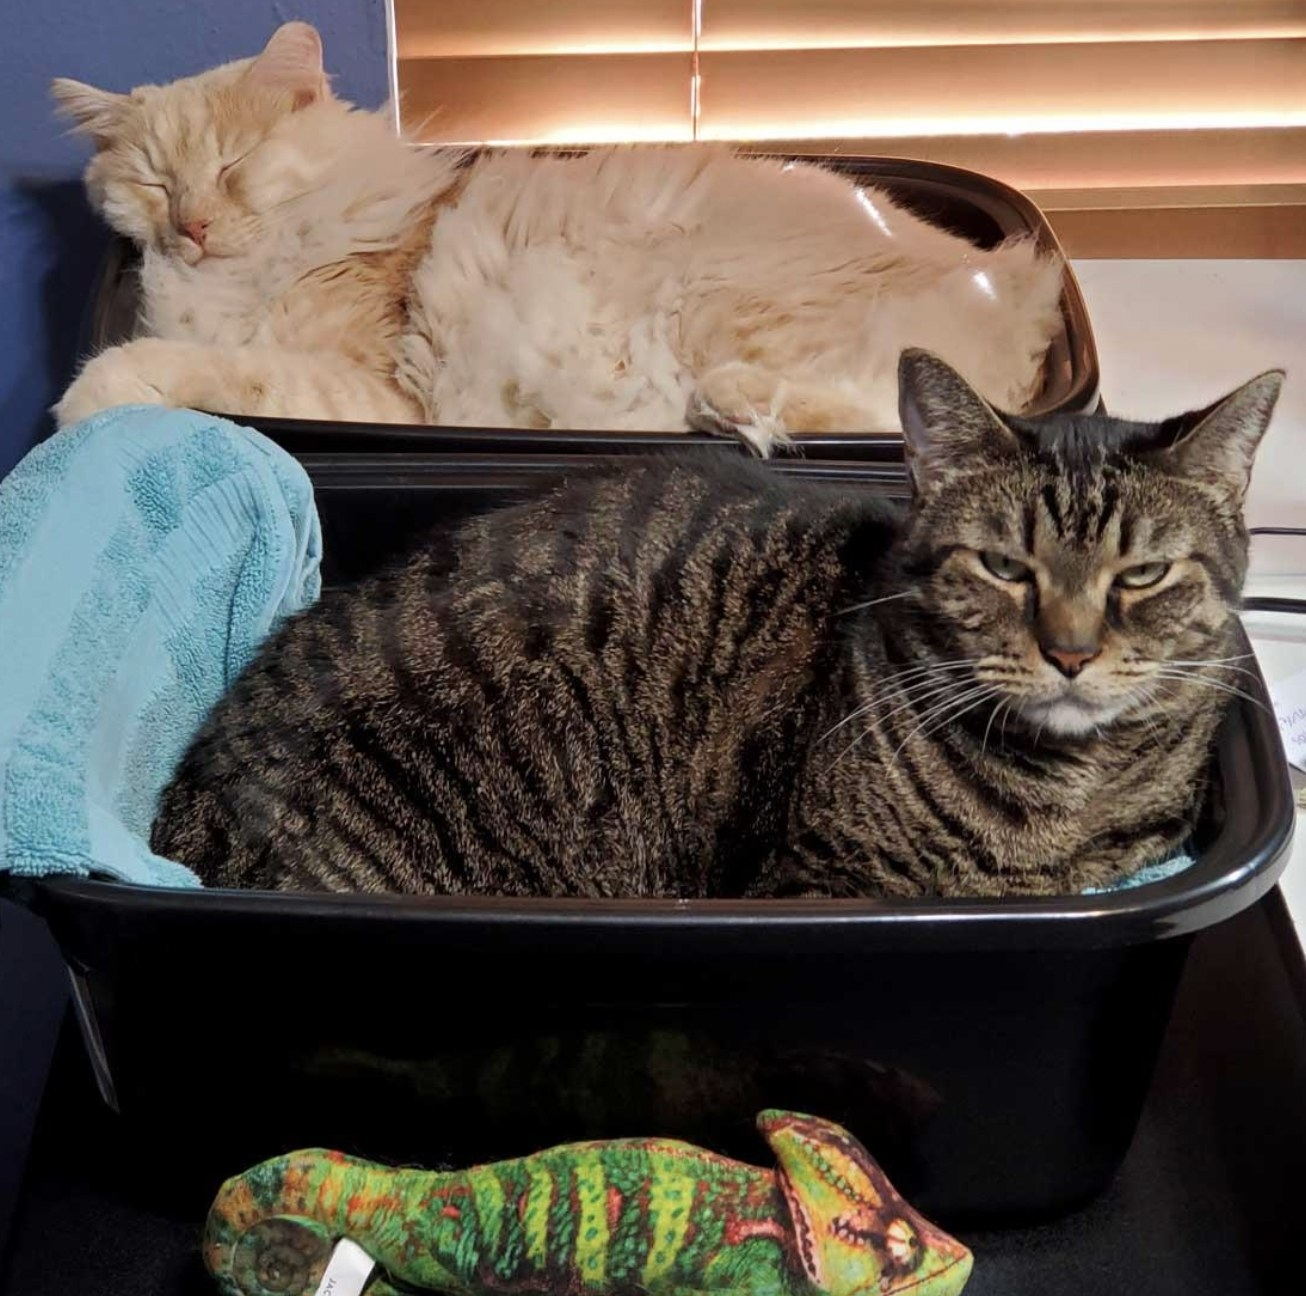 two cats lounging in black plastic basins